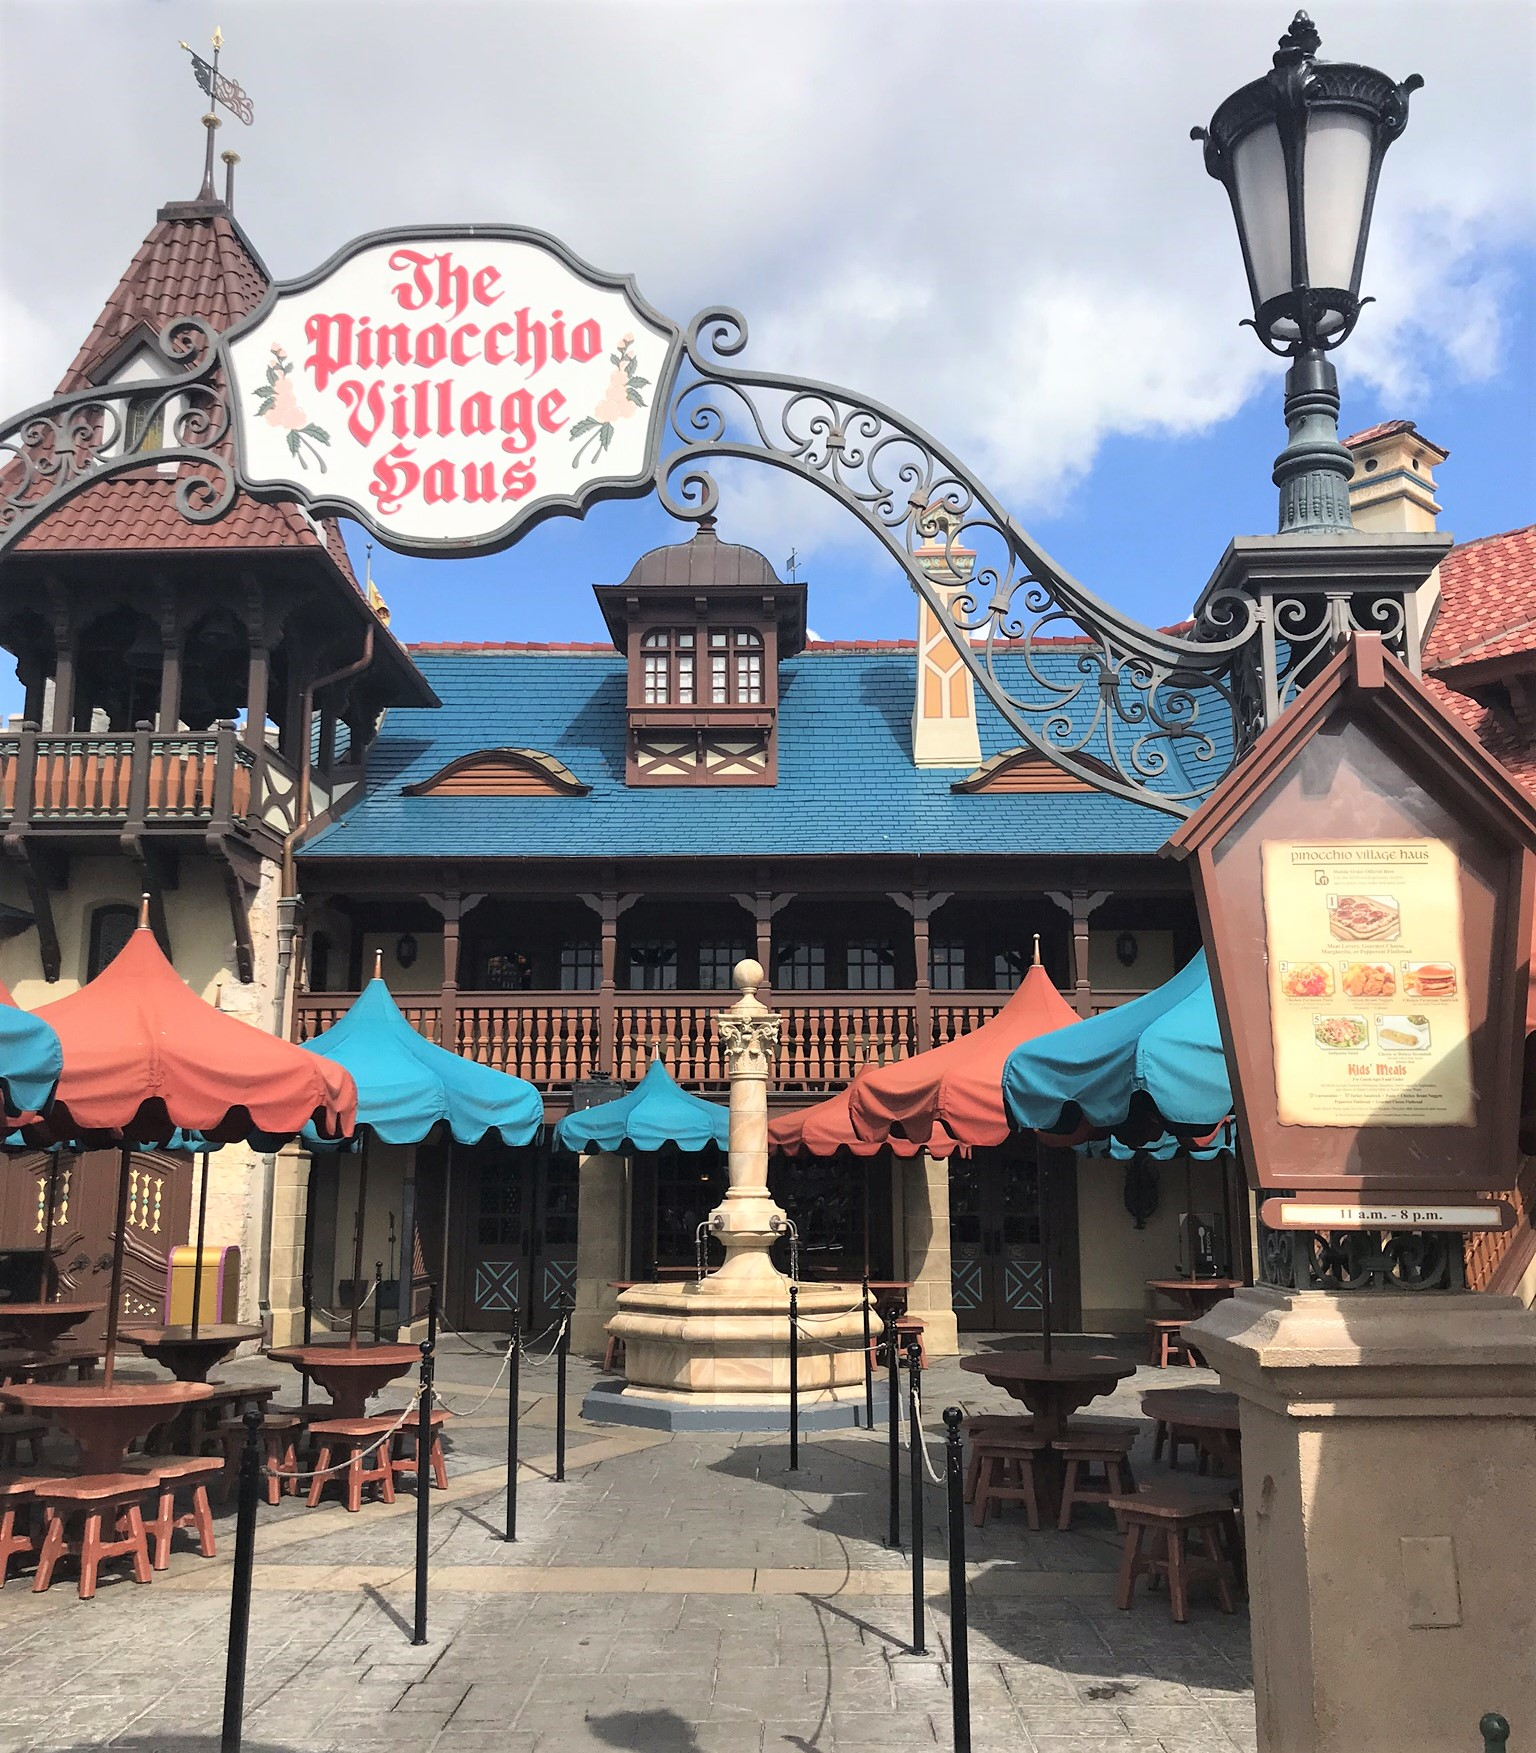 pinocchio village haus front entrance